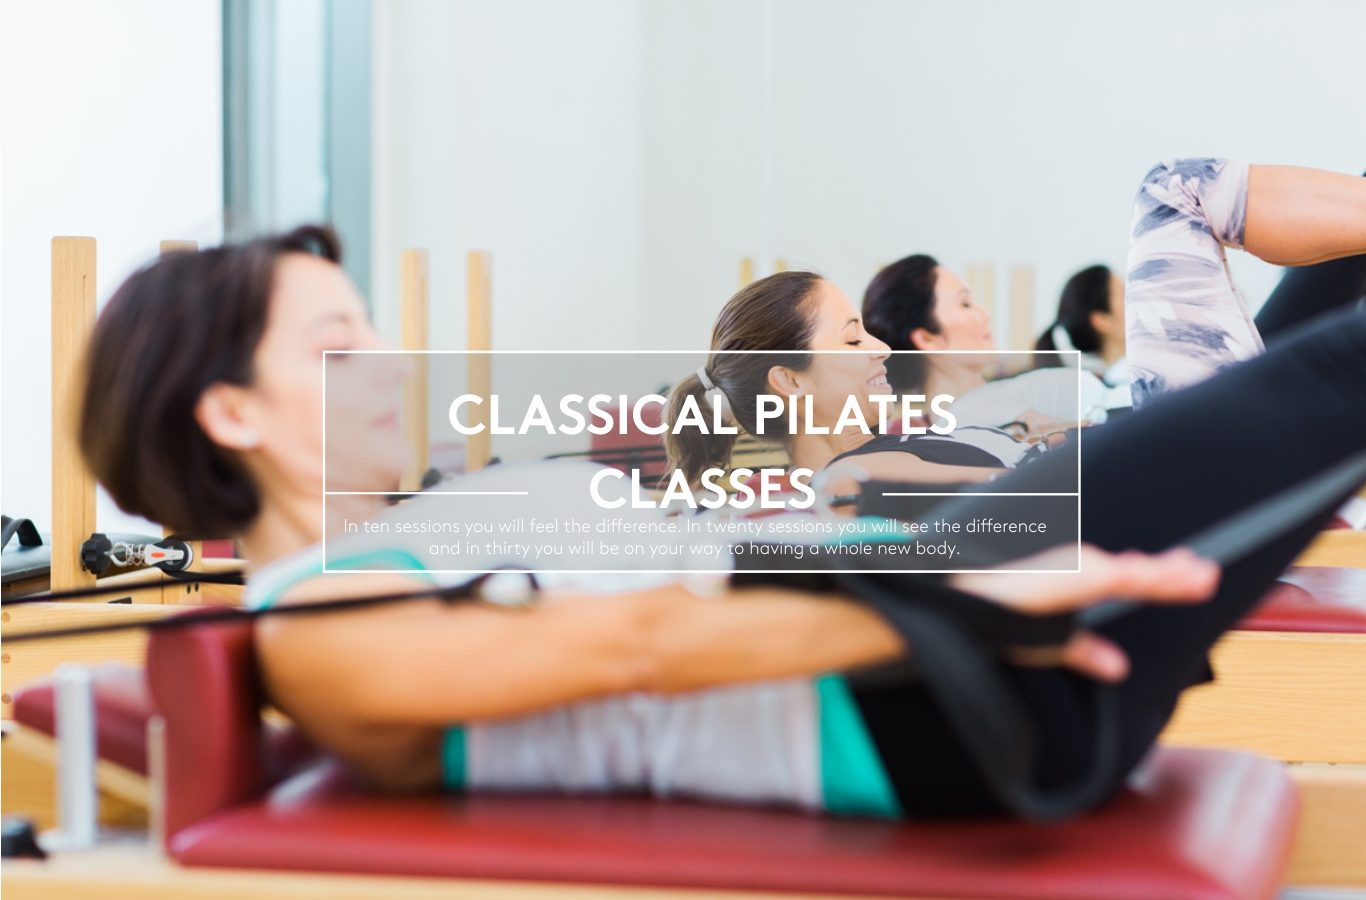 Classical pilates classes at The Hundred Wellness Center